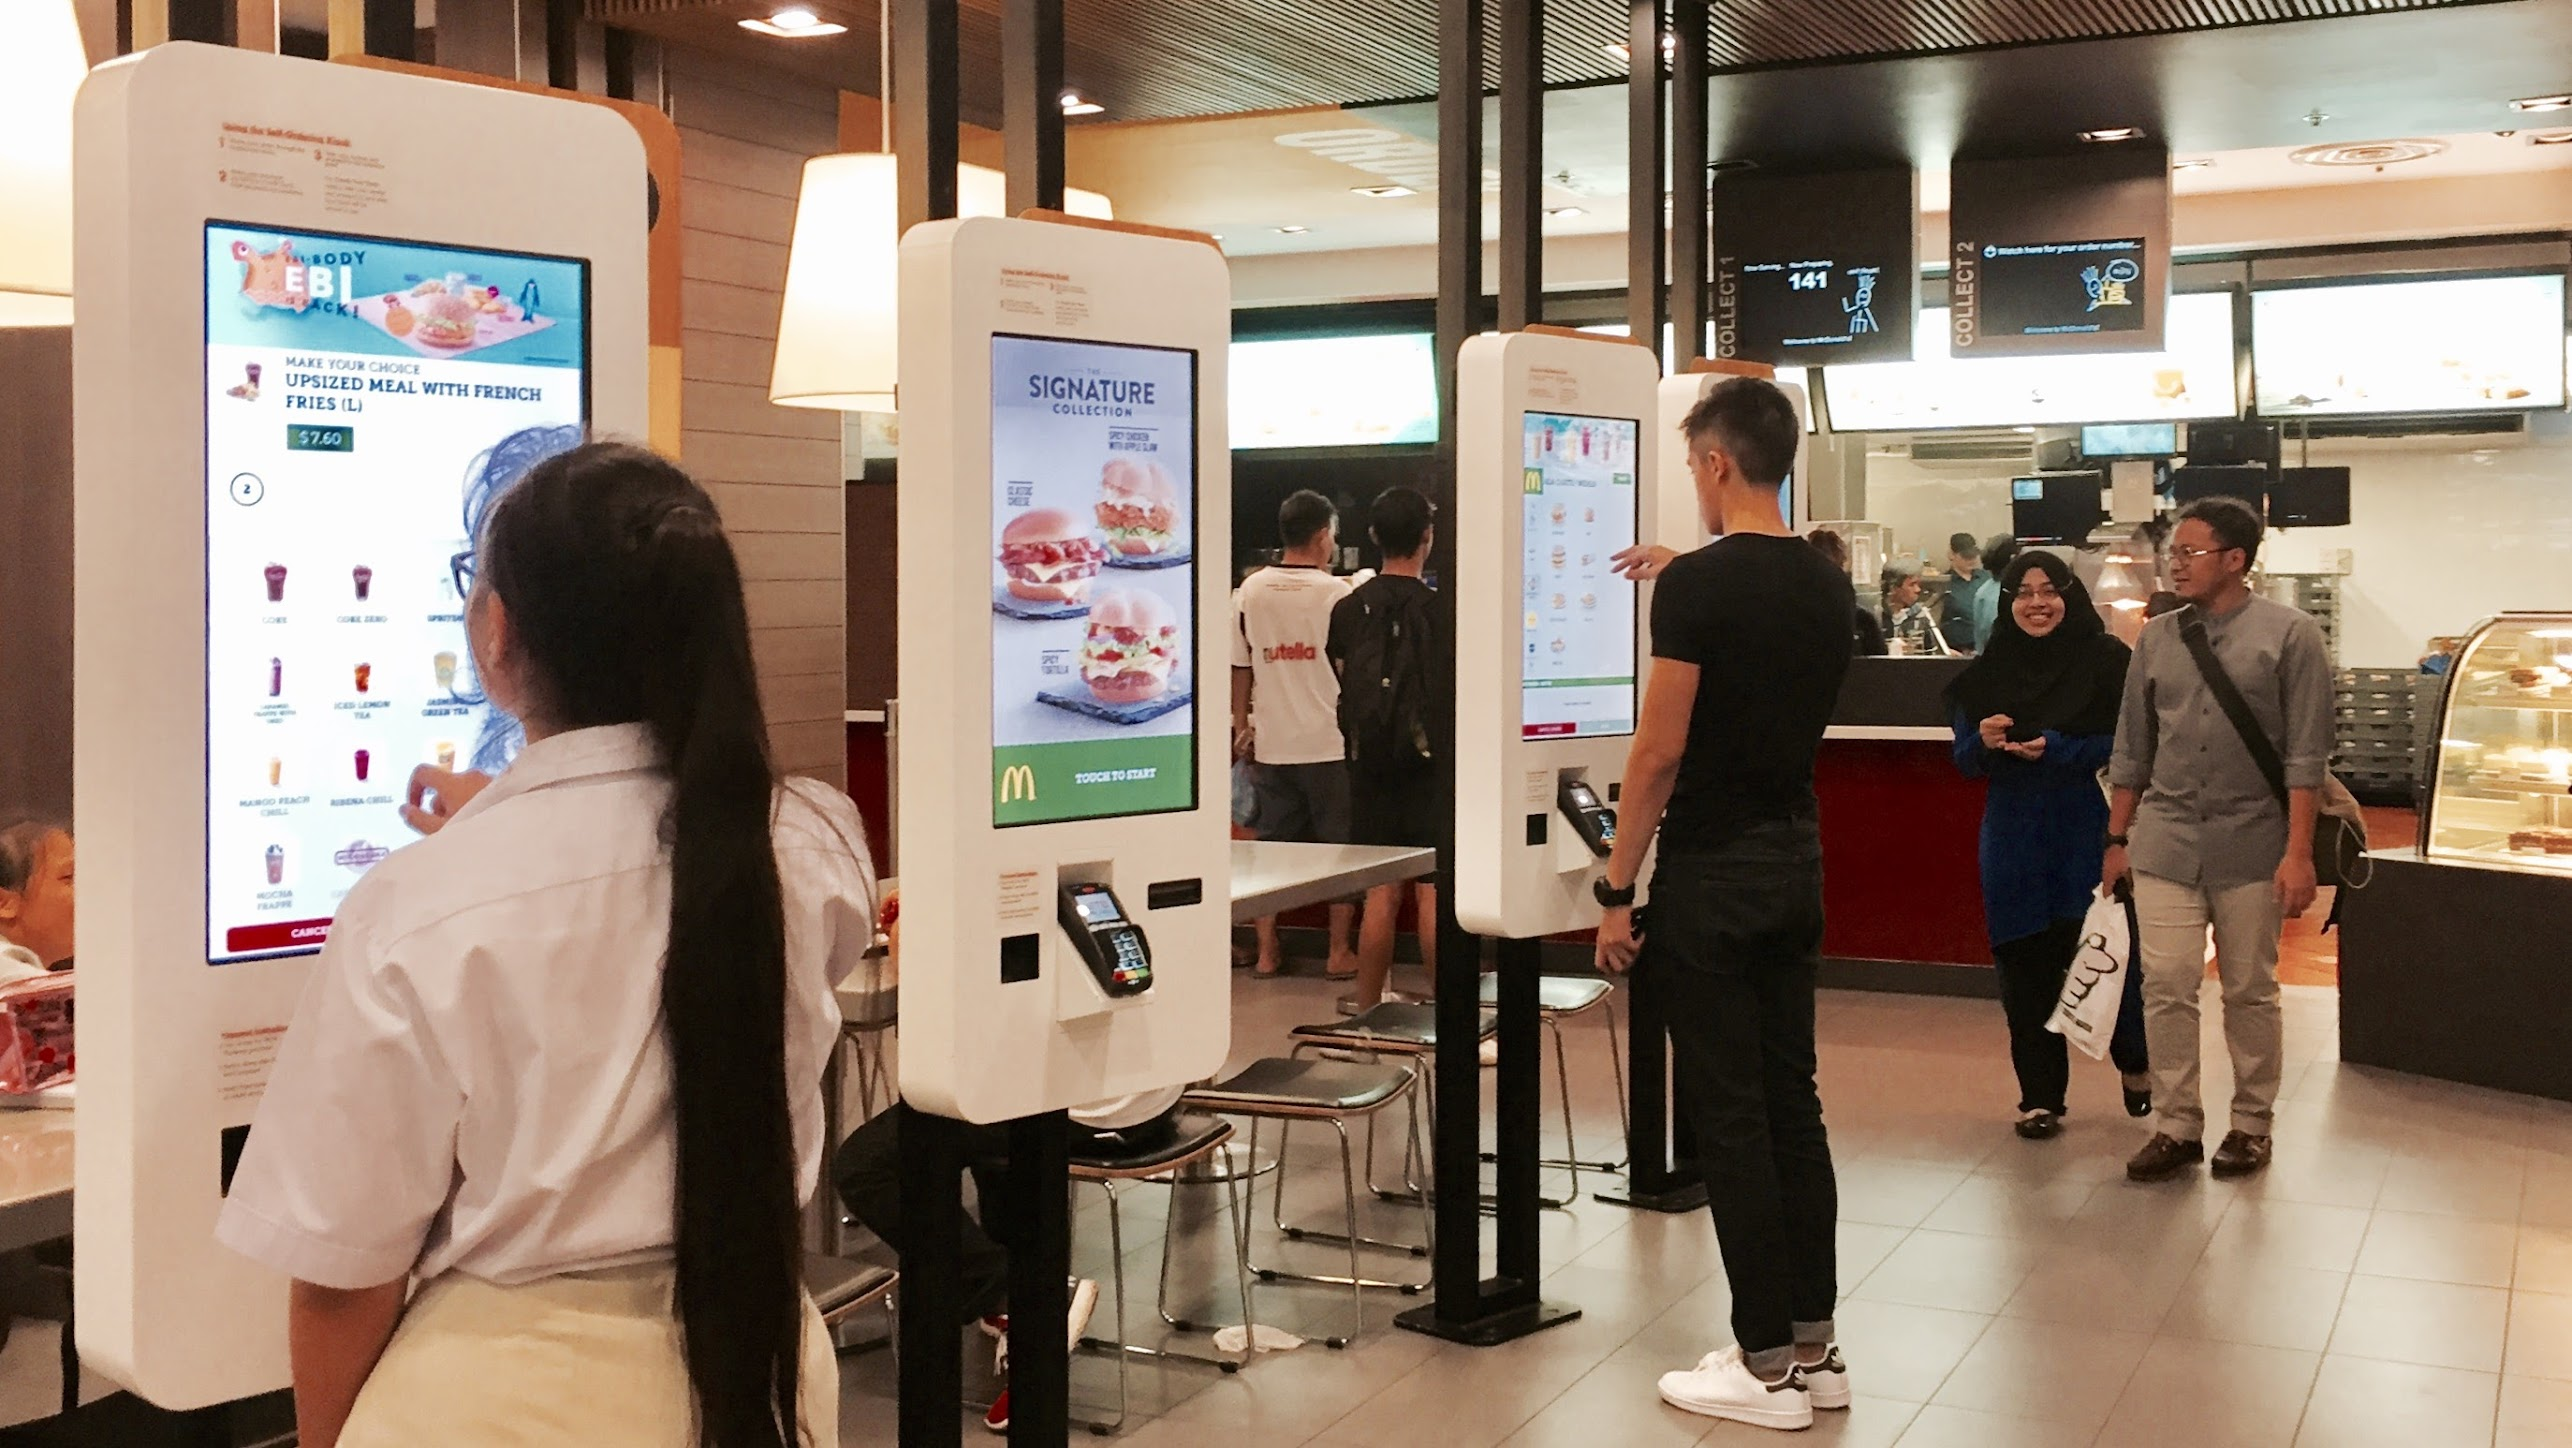 McDonald's self-order kiosks.